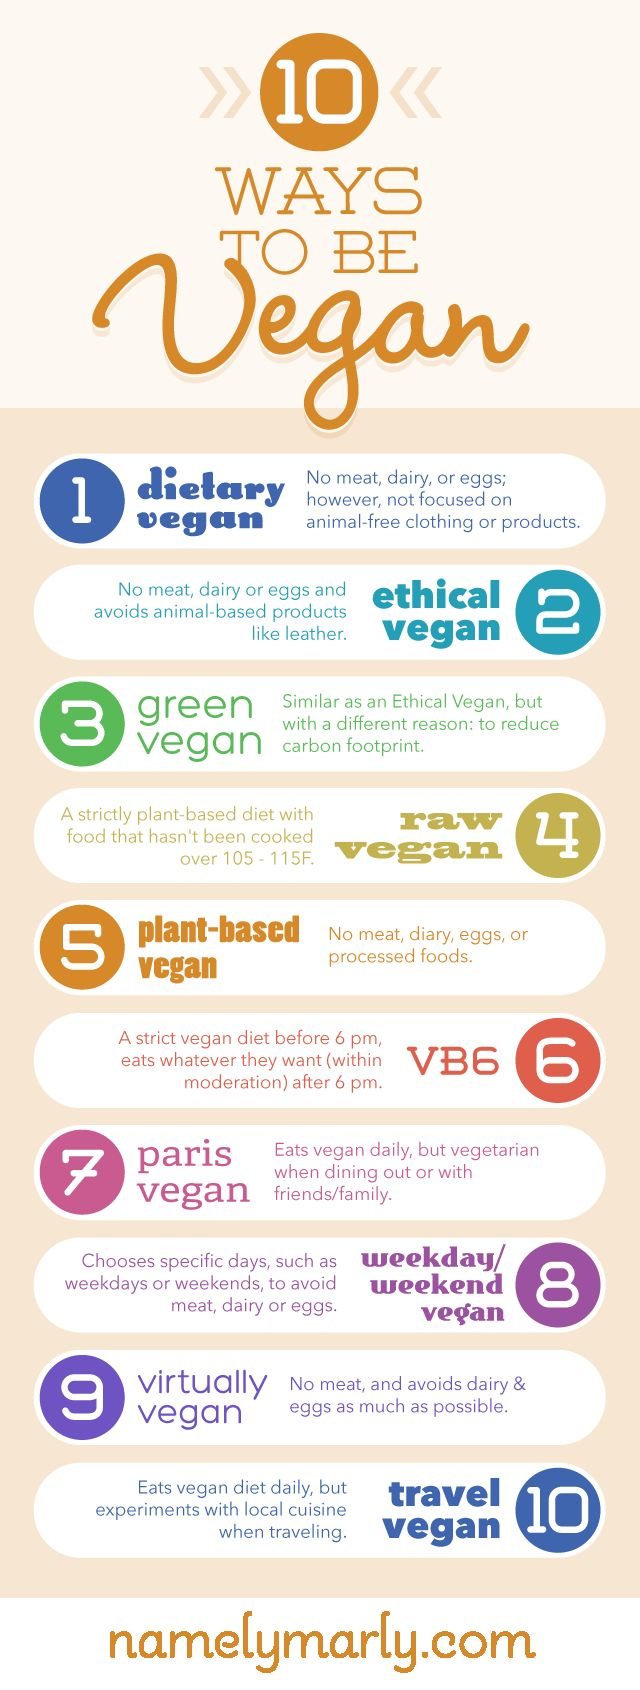 Being vegan is more than just a restrictive way of living. If you think being 100% vegan (if that really was possible anyway) 24 hours a day, 7 days a week is too much...you have options!! Consider these 10 ways to be Vegan and decide which one might work for you. Go #vegan